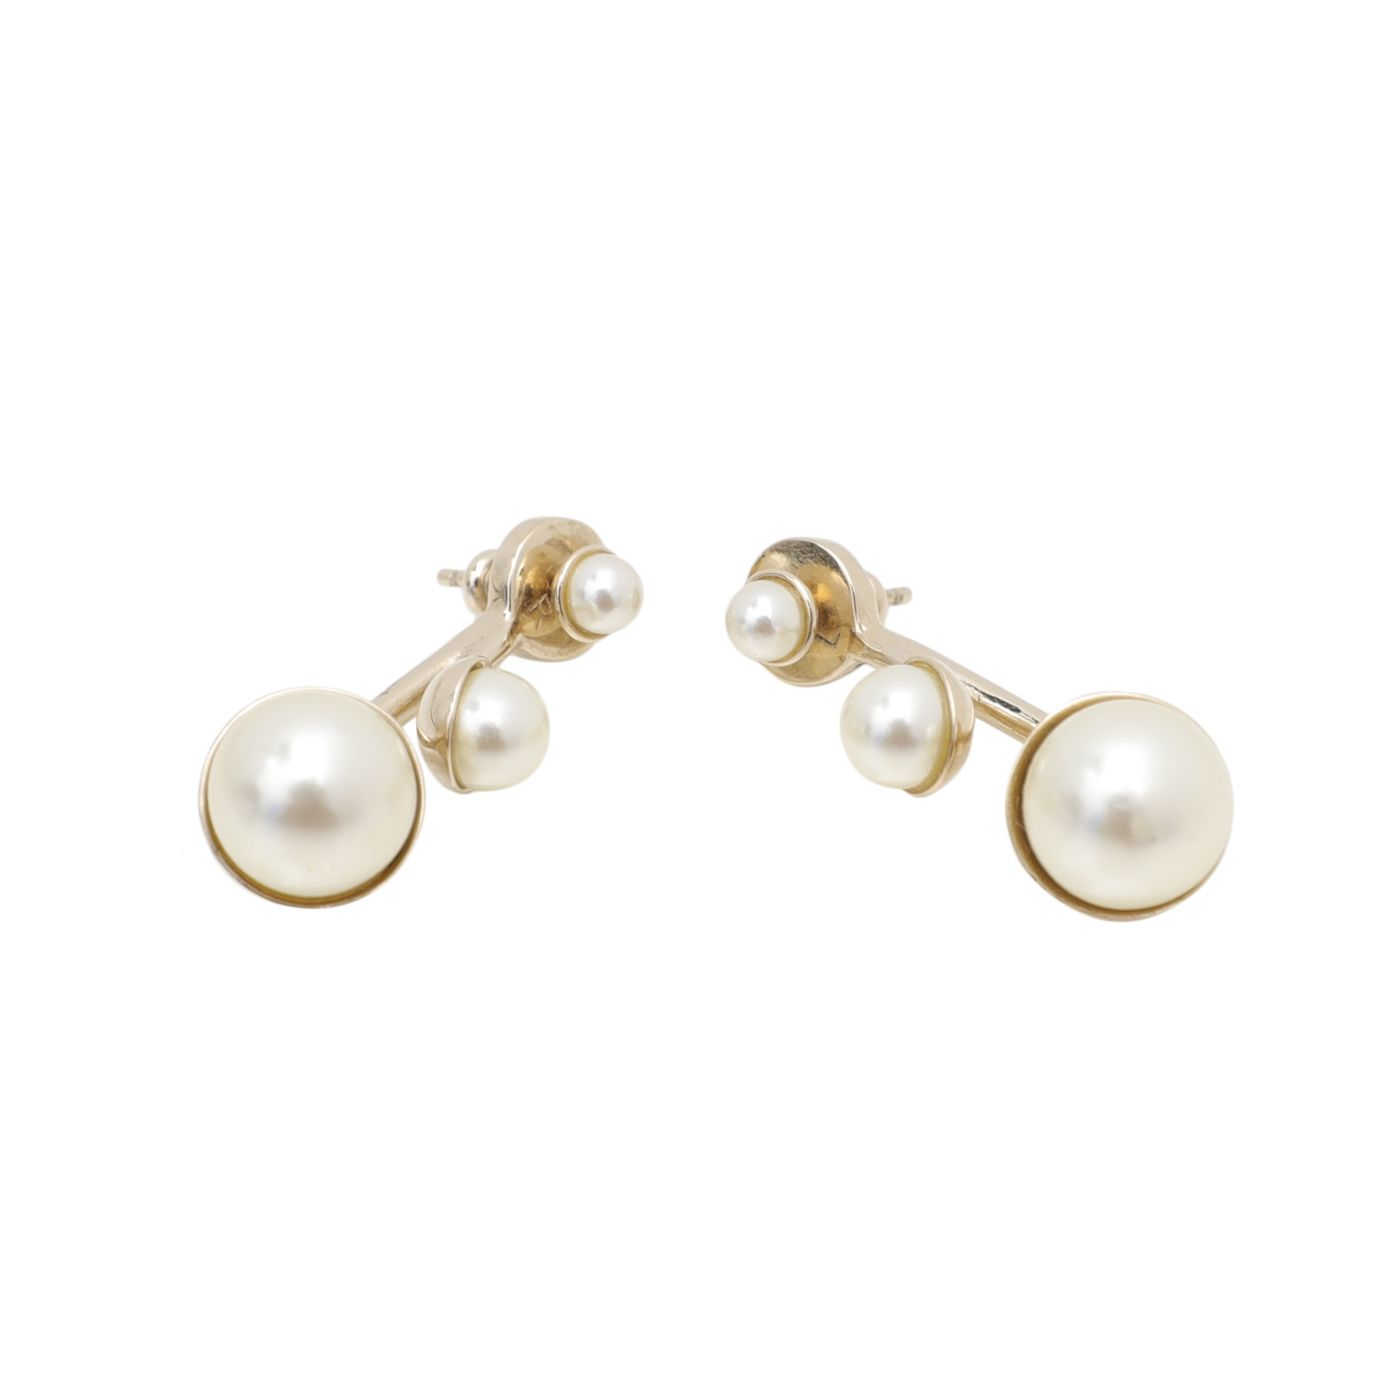 Christian Dior White Pearls Tribales Earrings